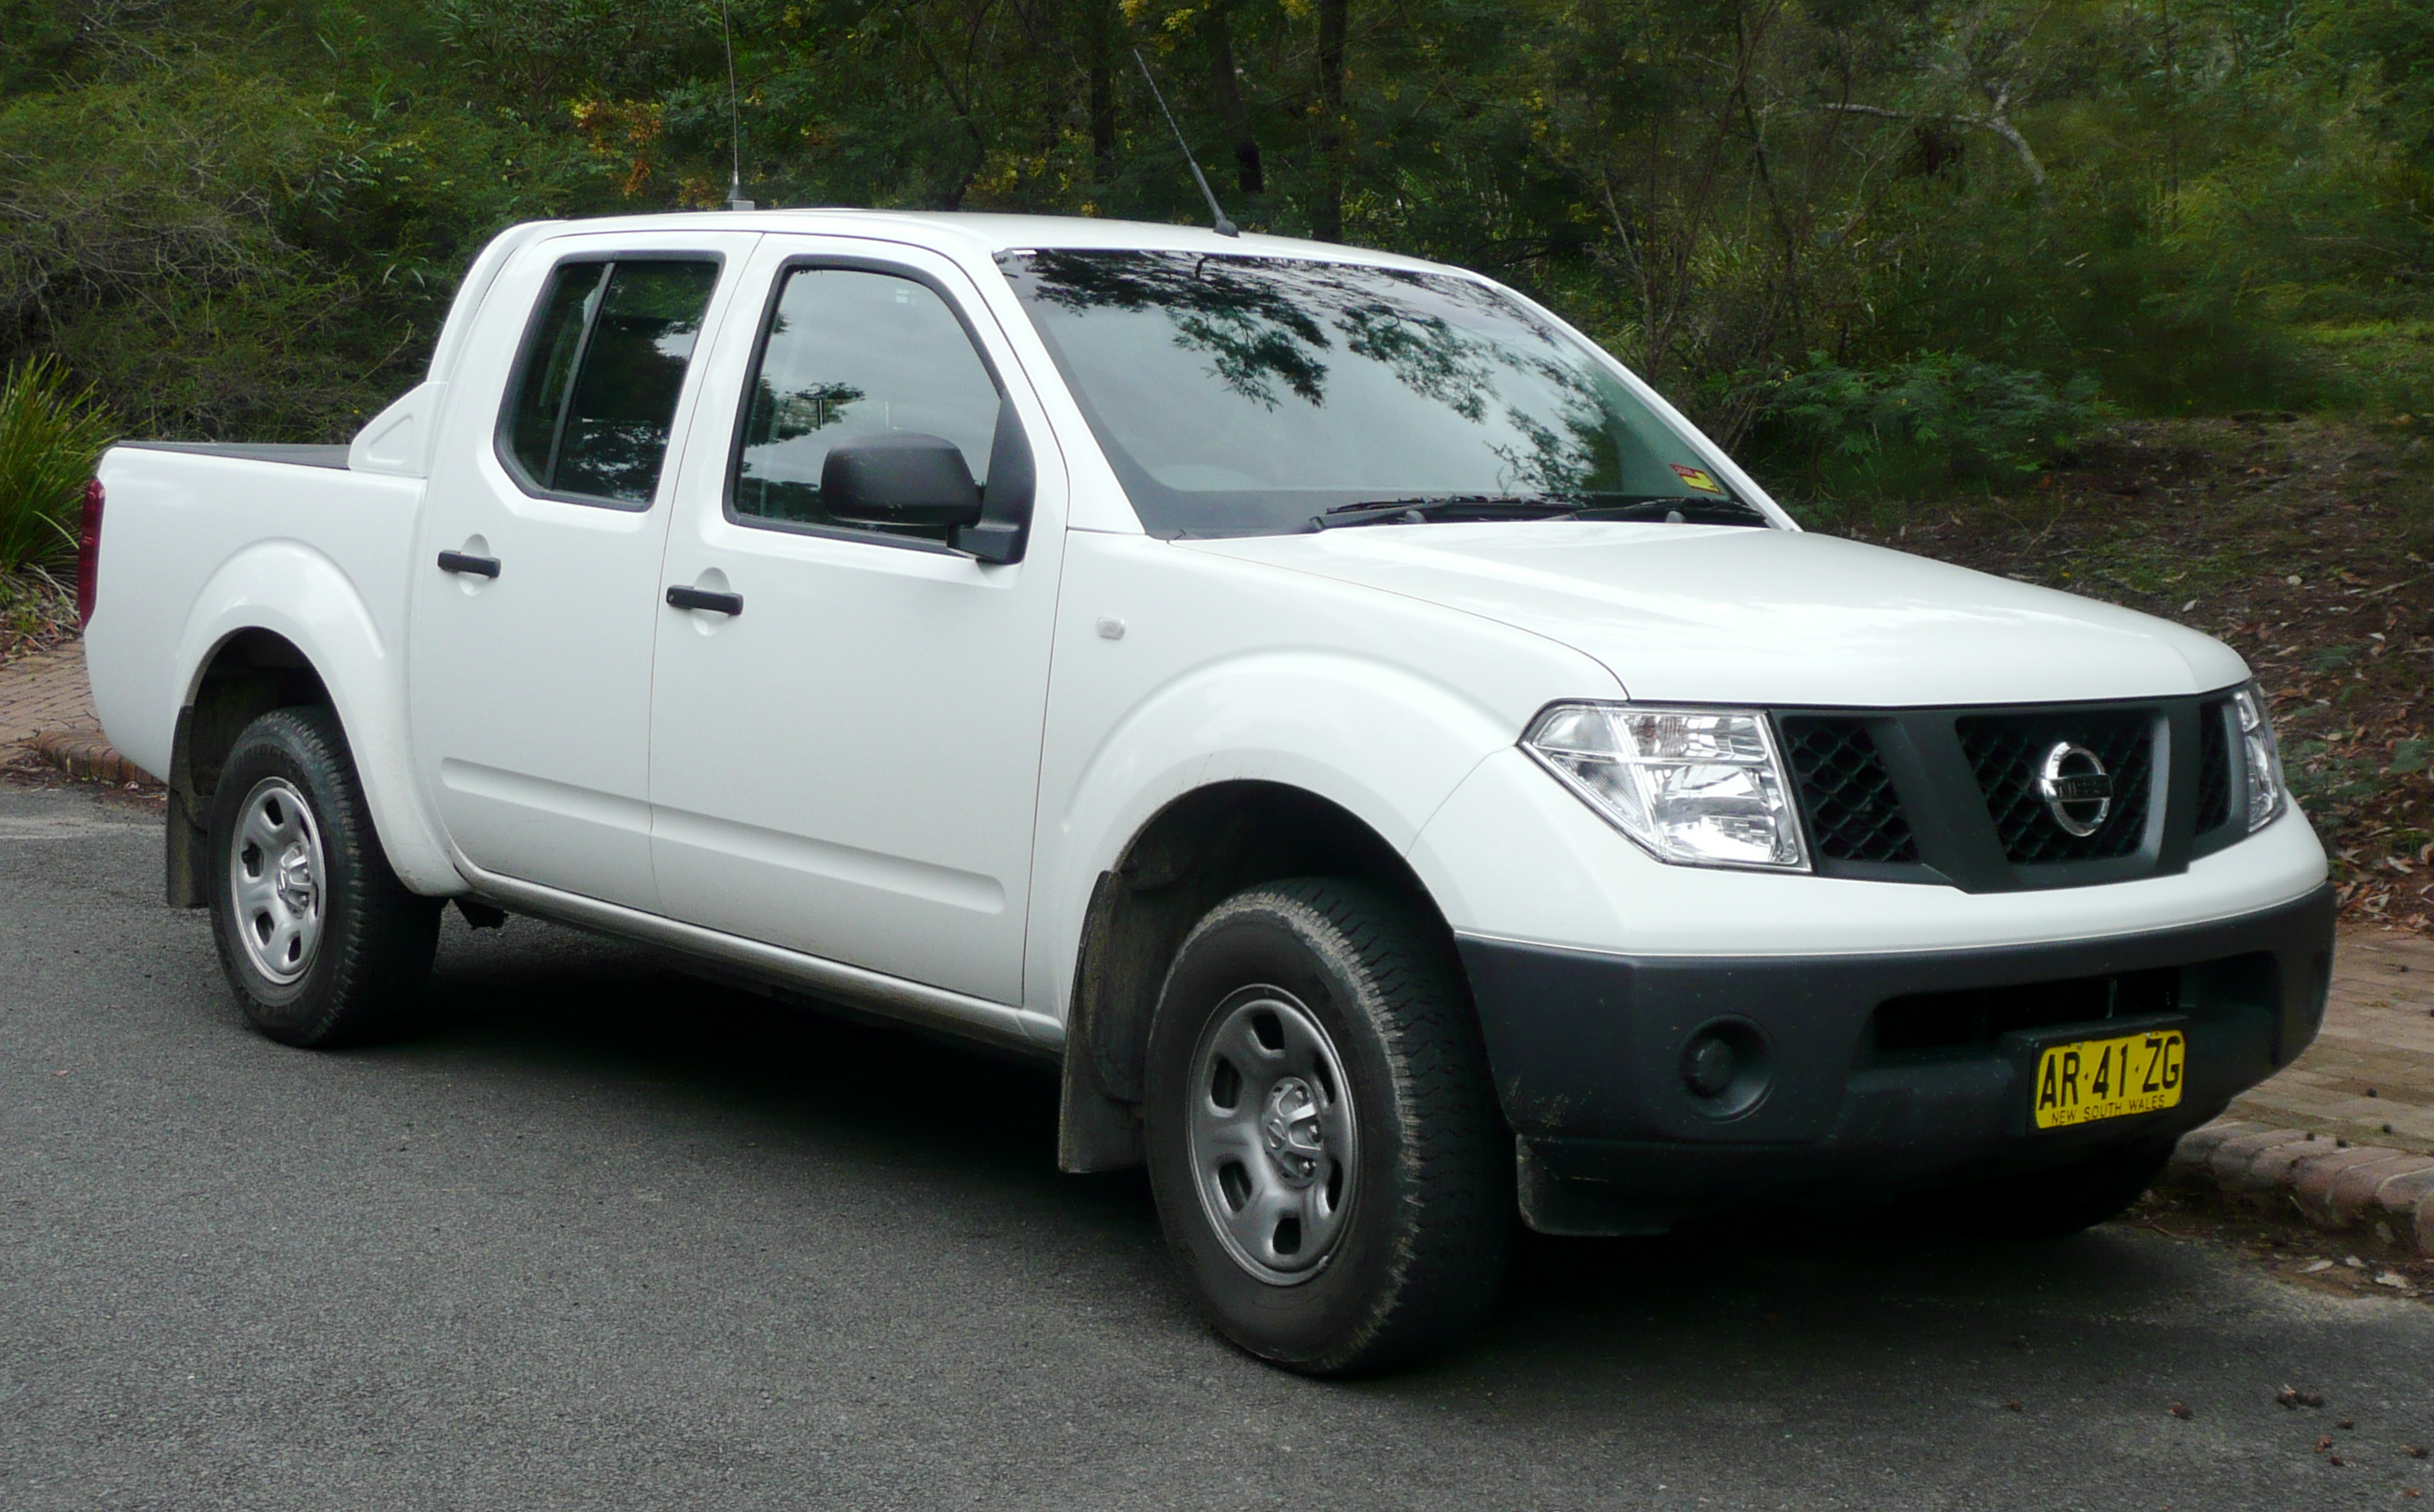 file 2005 2007 nissan navara d40 rx 4 door utility 2007 12 12 wikimedia commons. Black Bedroom Furniture Sets. Home Design Ideas